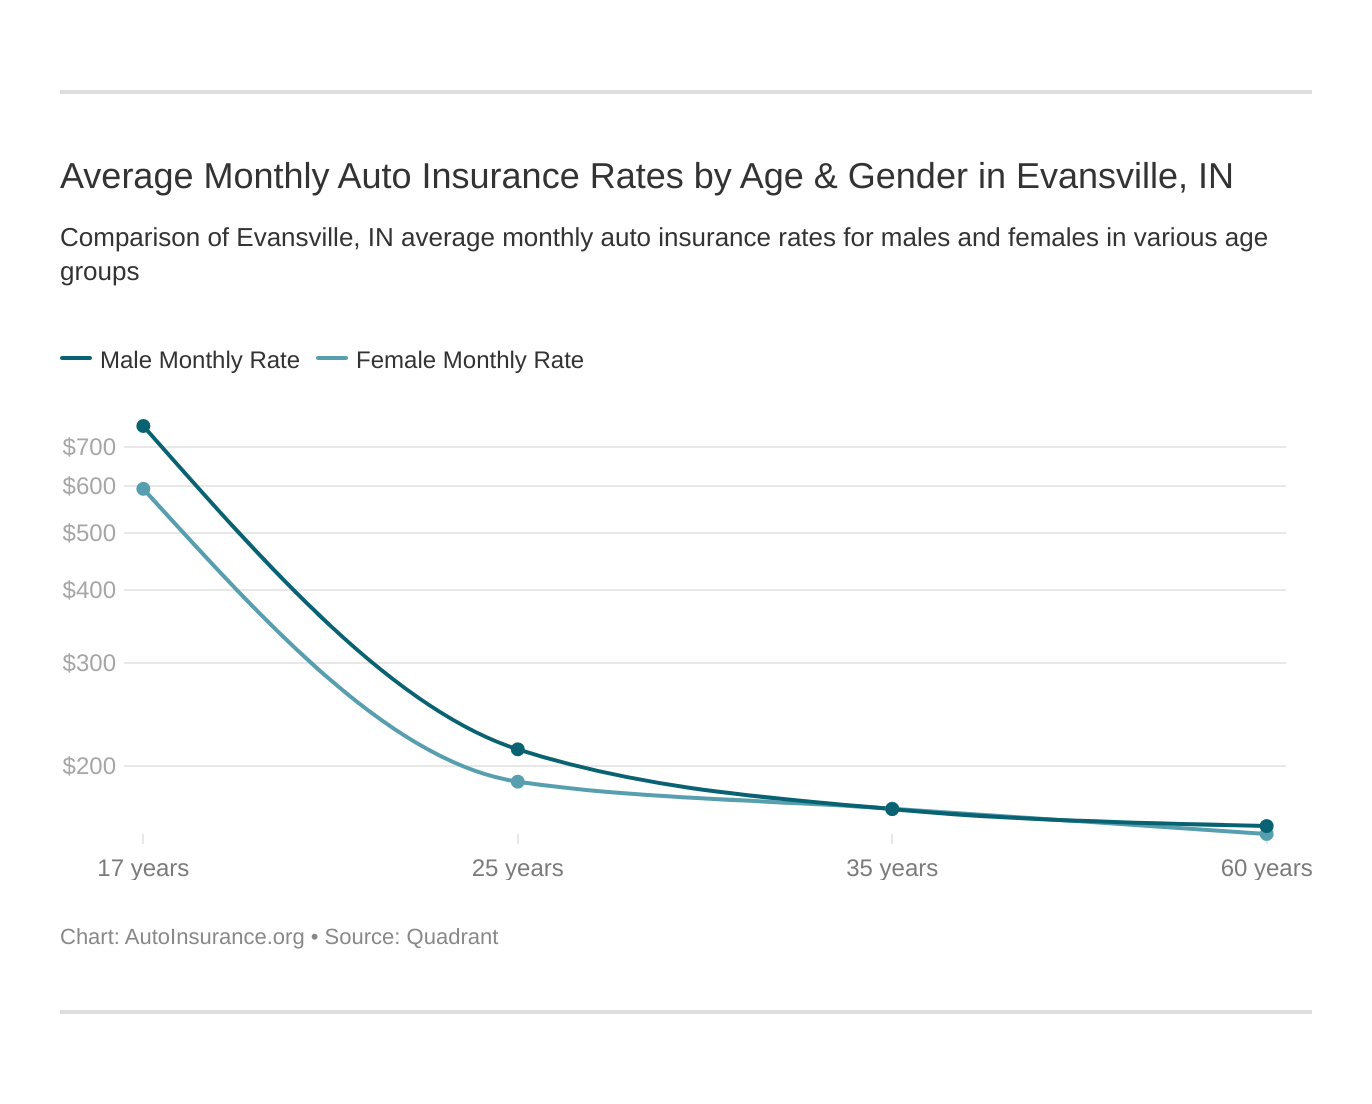 Average Monthly Auto Insurance Rates by Age & Gender in Evansville, IN